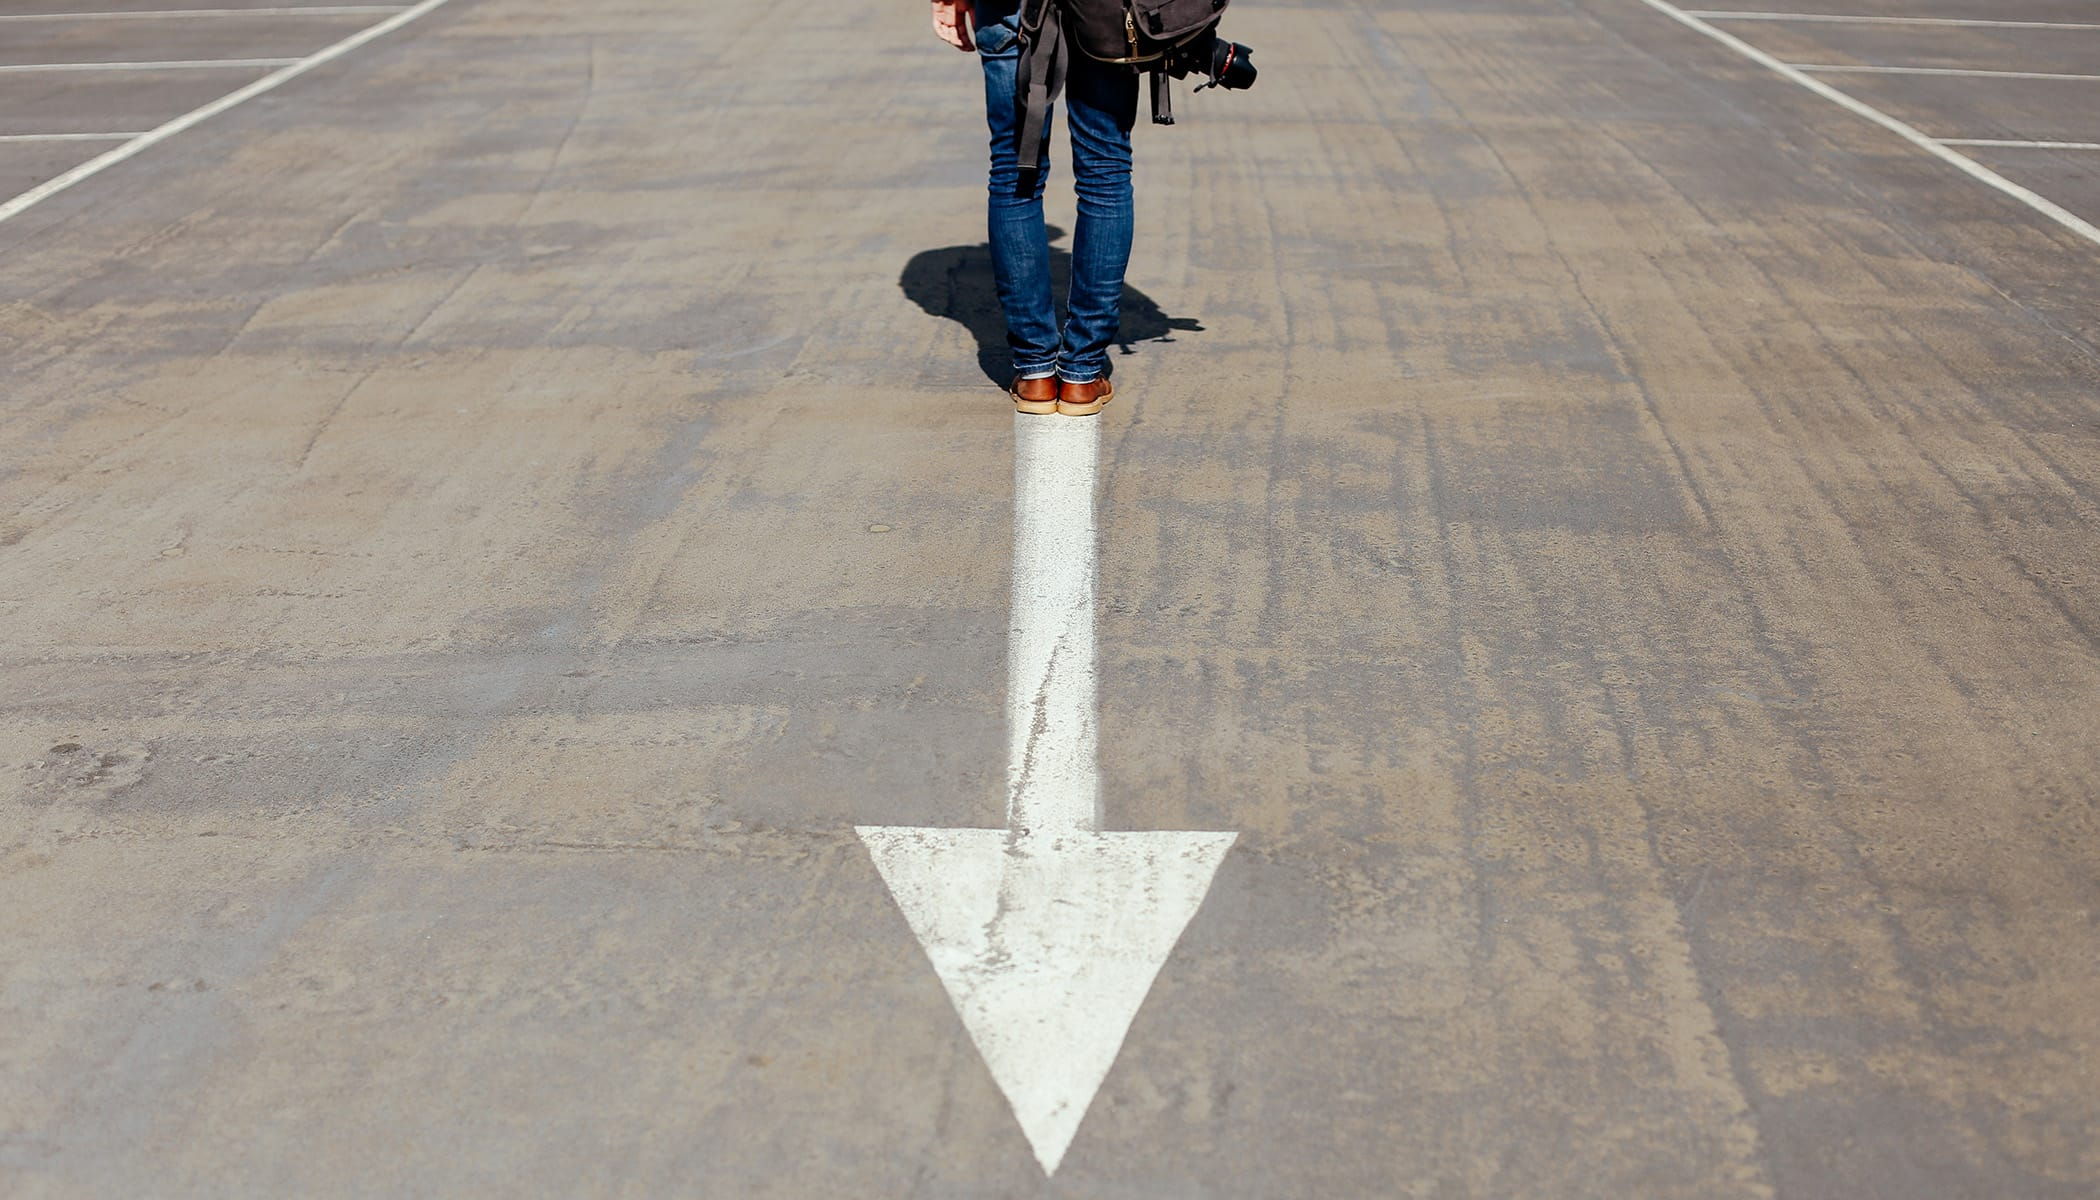 Person with camera standing on a parking lot